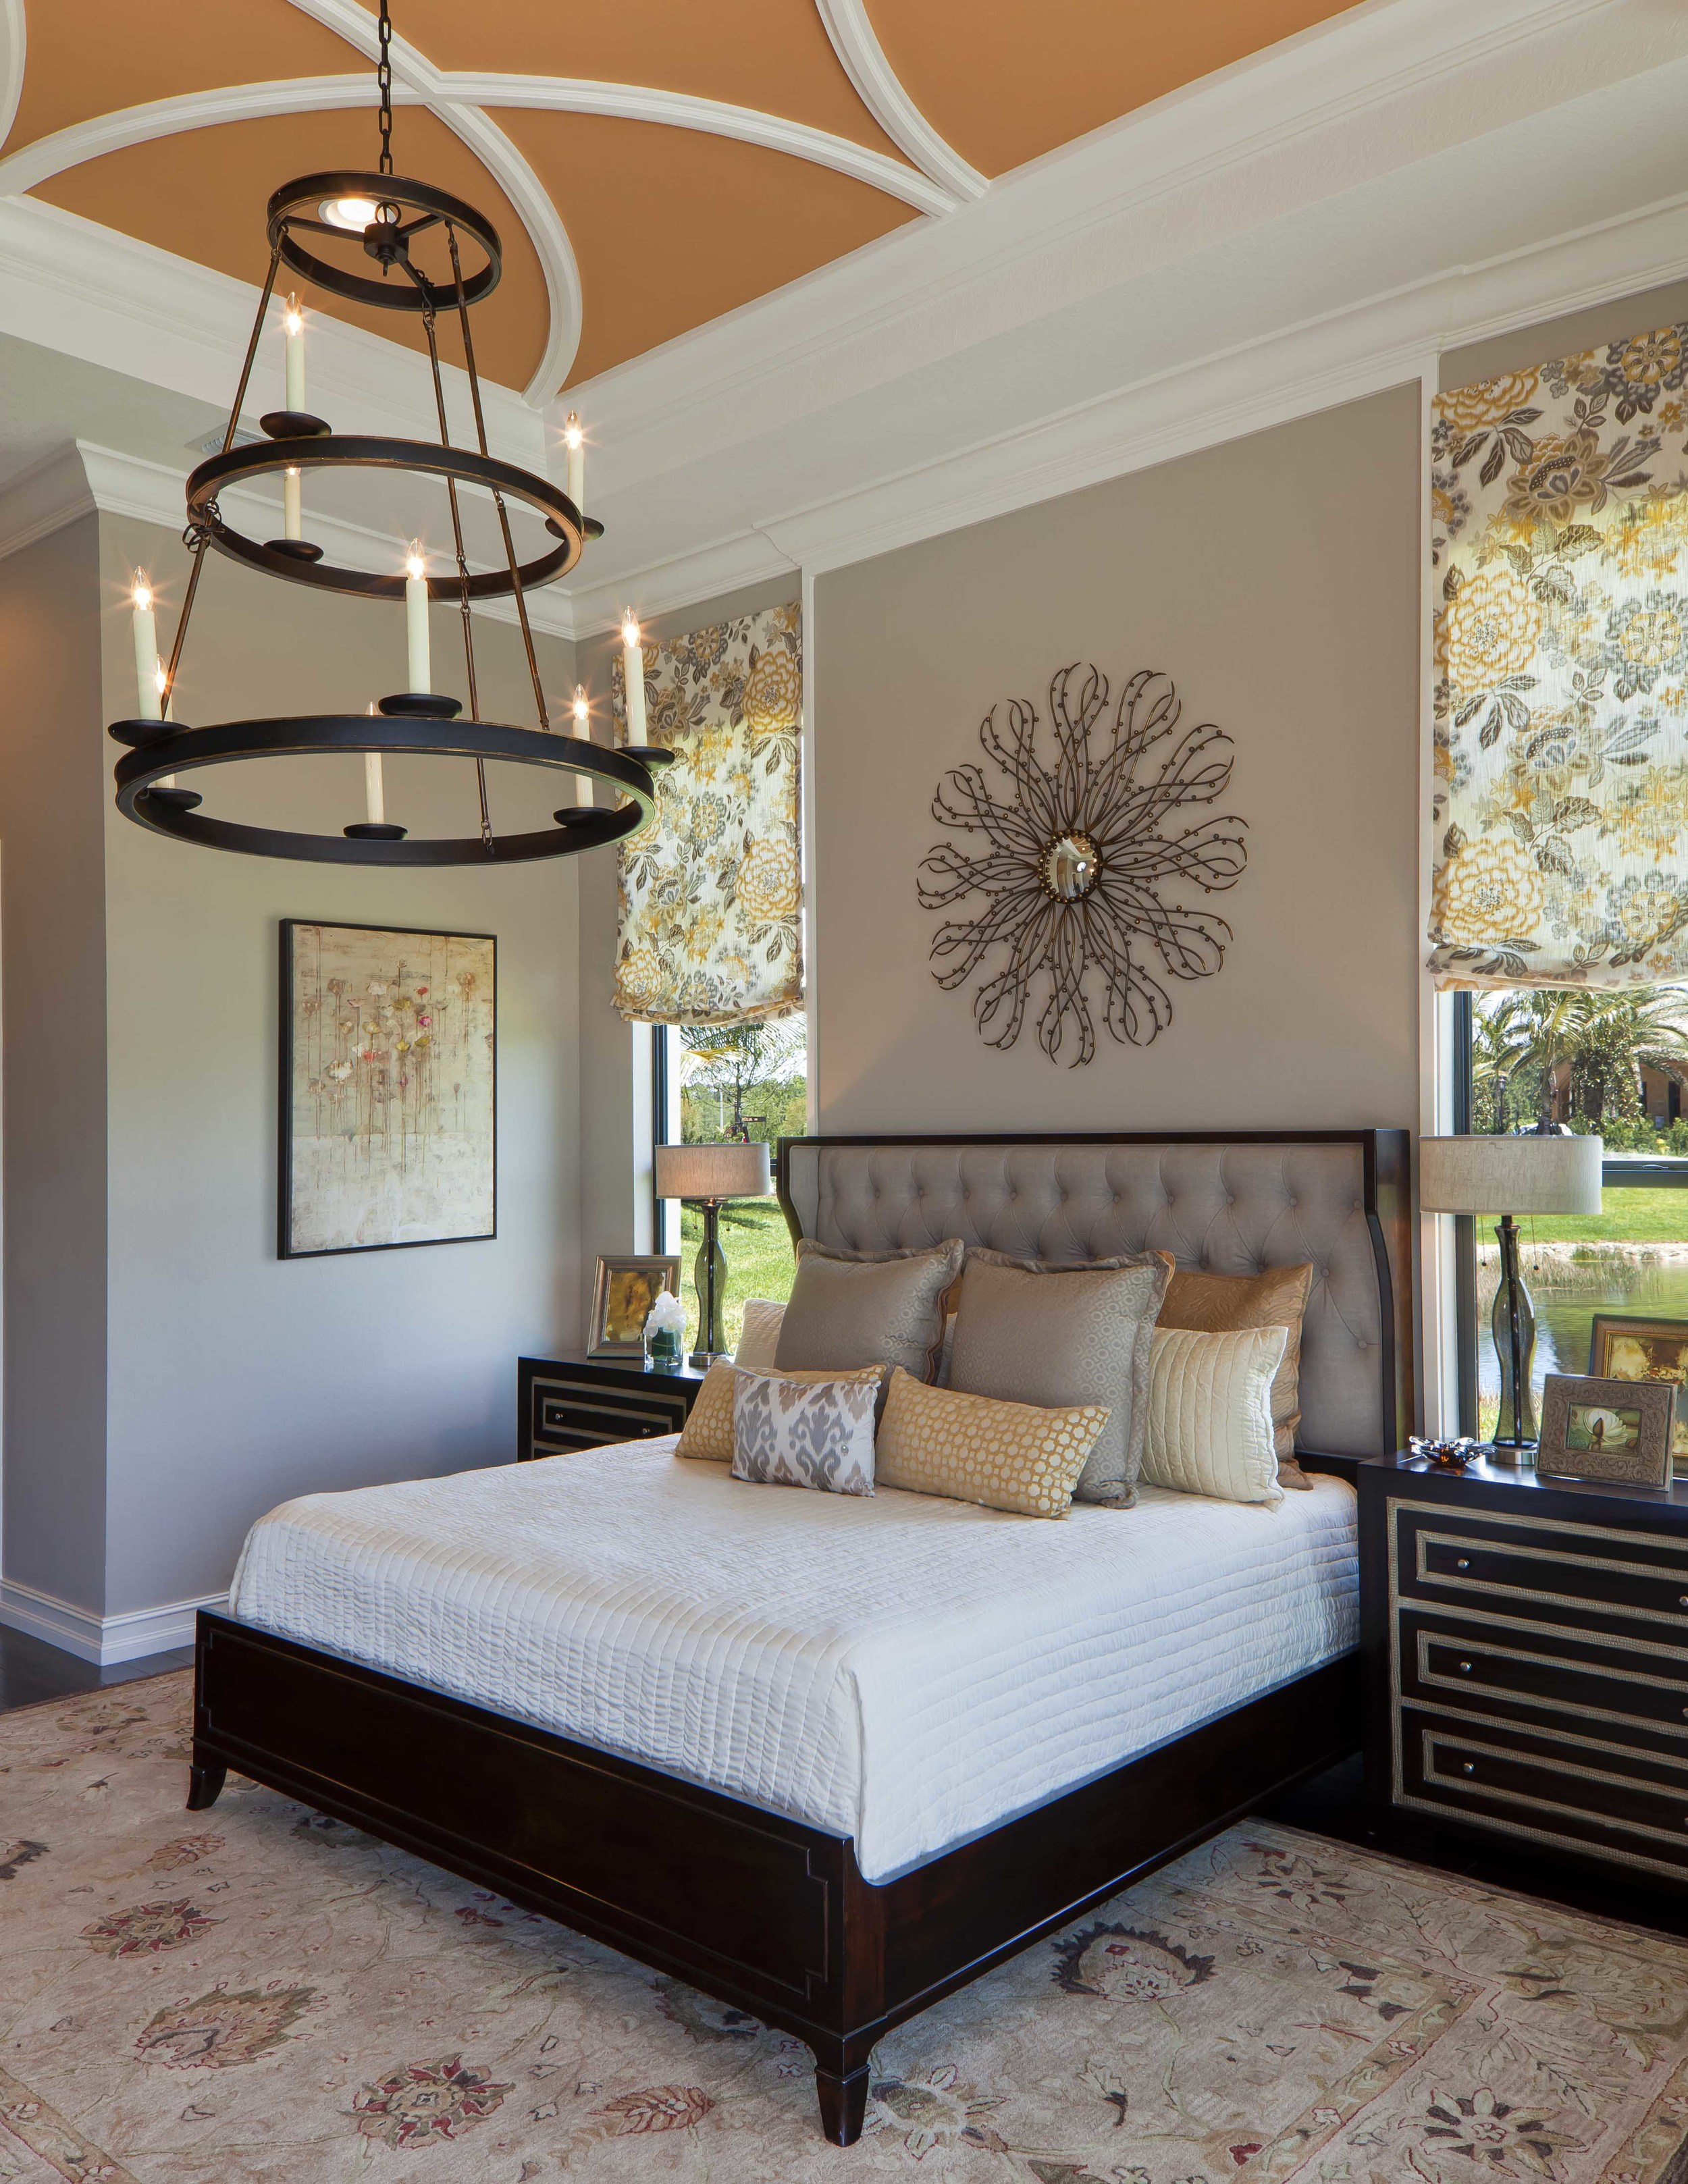 Vibrant Interior Design   A Spectacular Stand Out in Sea of Neutrals     Beasley   Henley s Design Principal Troy Beasley  created the interiors of  2822 sq  ft  home to be vibrant  providing a much needed contrast to pales  and